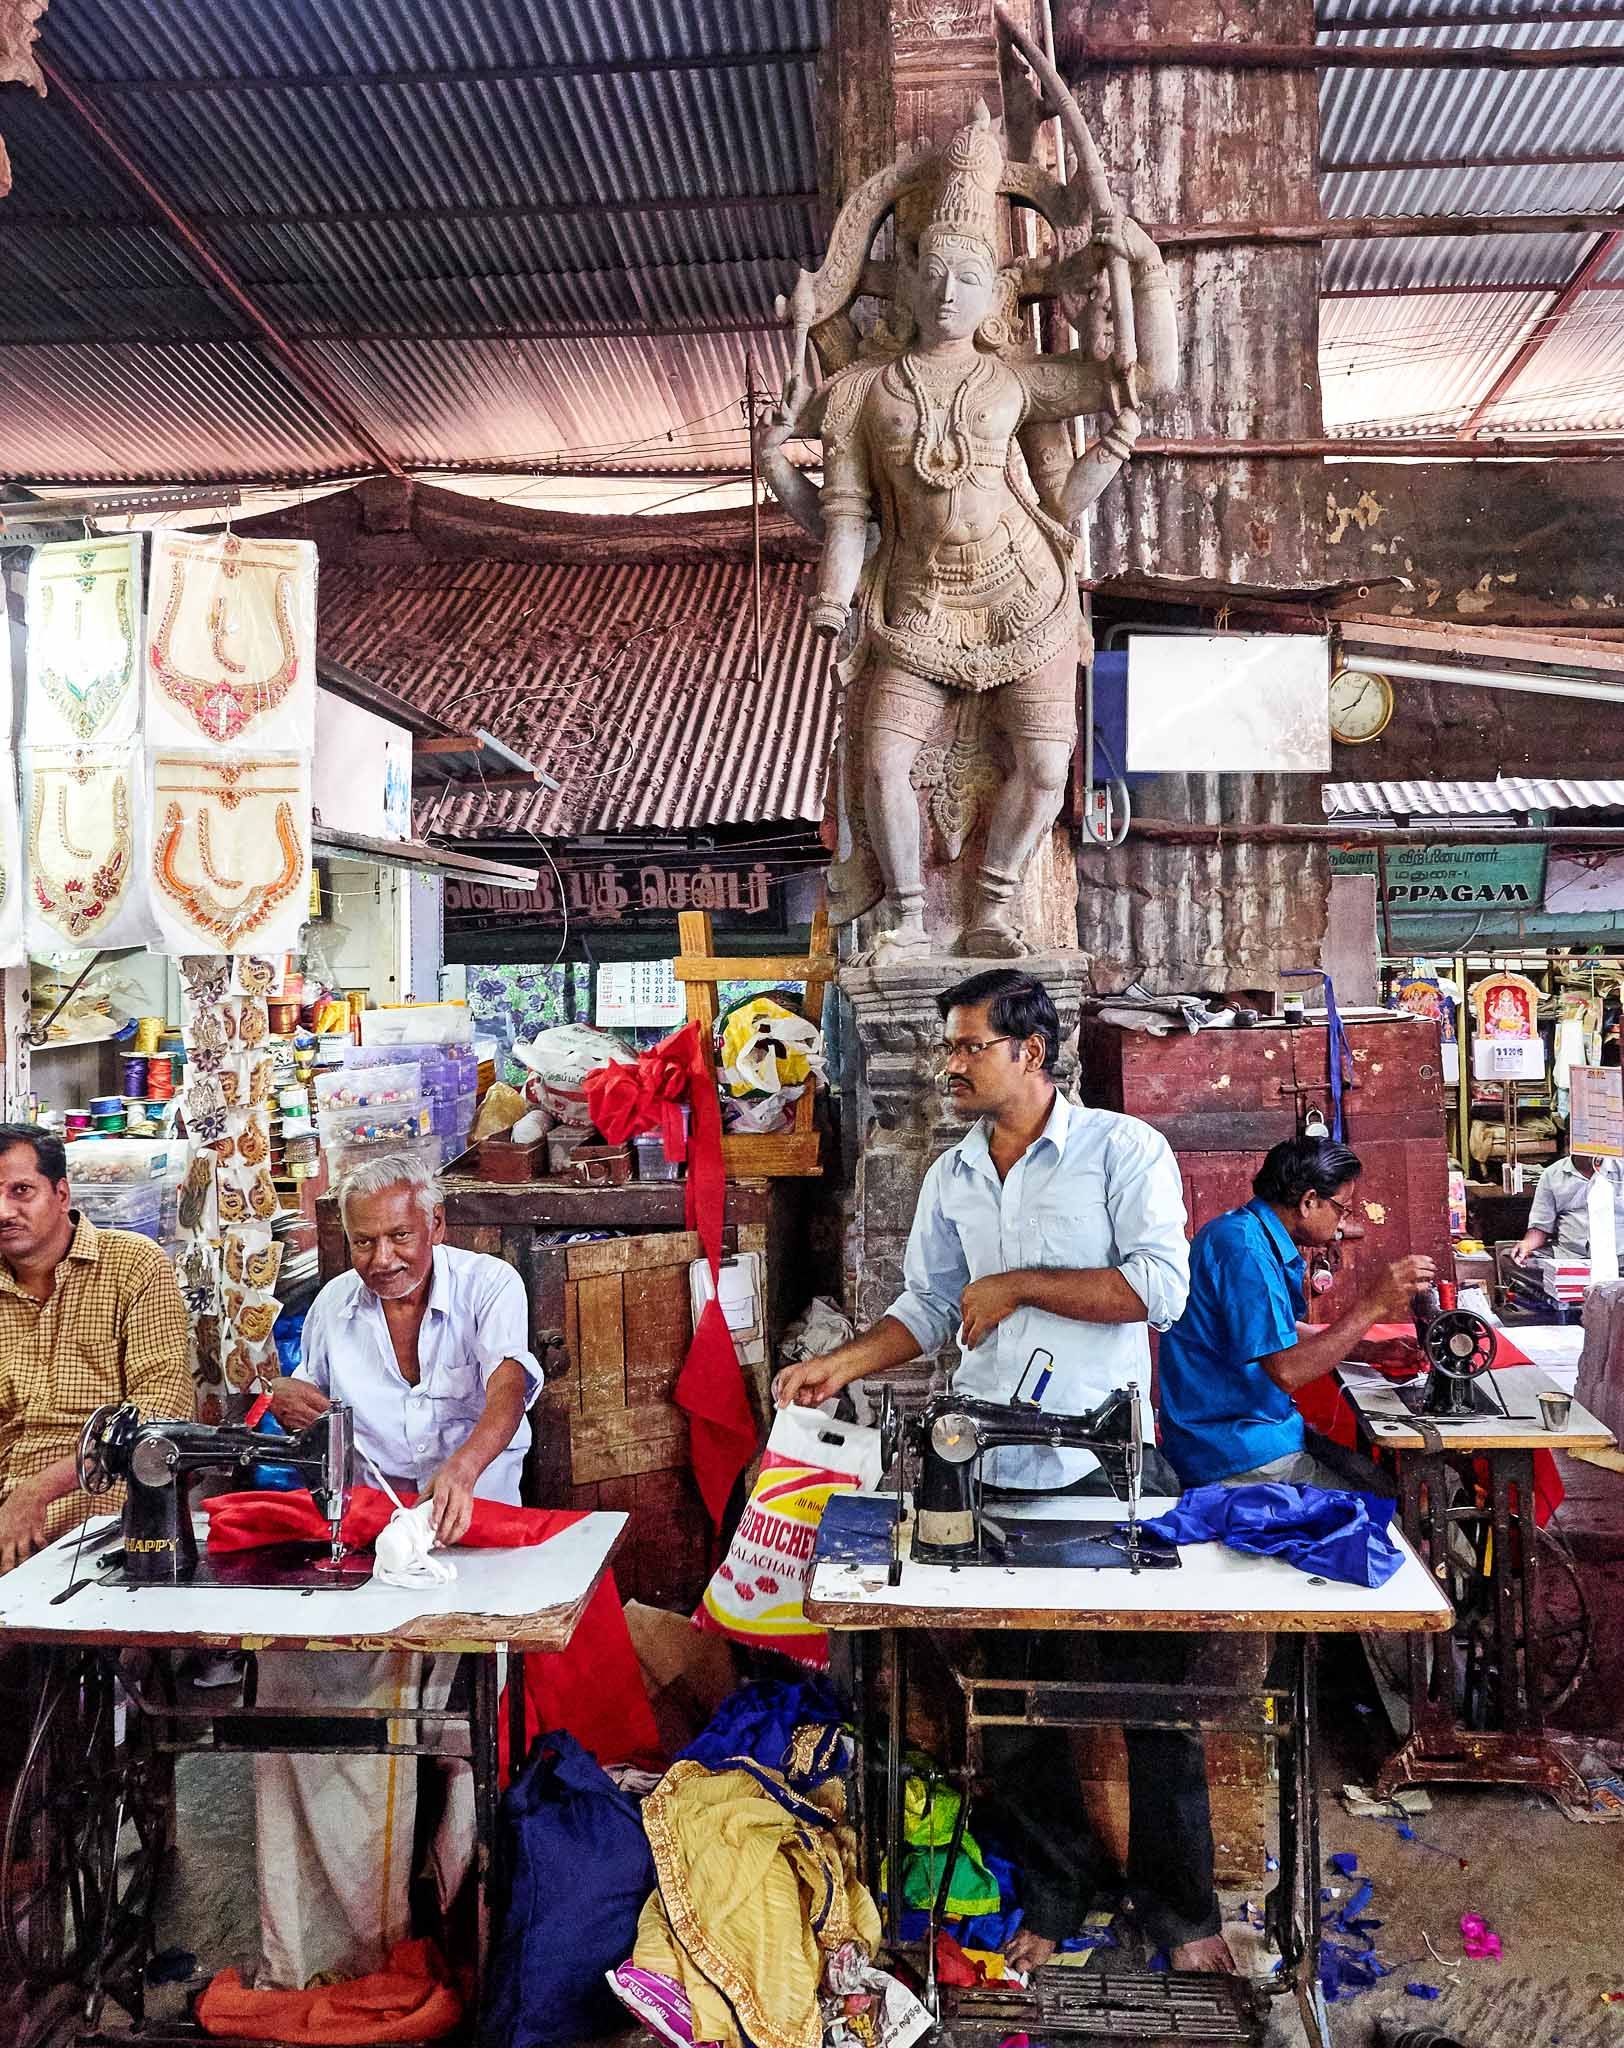 Tailors at work in an old temple hall amidst sculptures, Puthu Mandapam, Madurai, Tamil Nadu, India